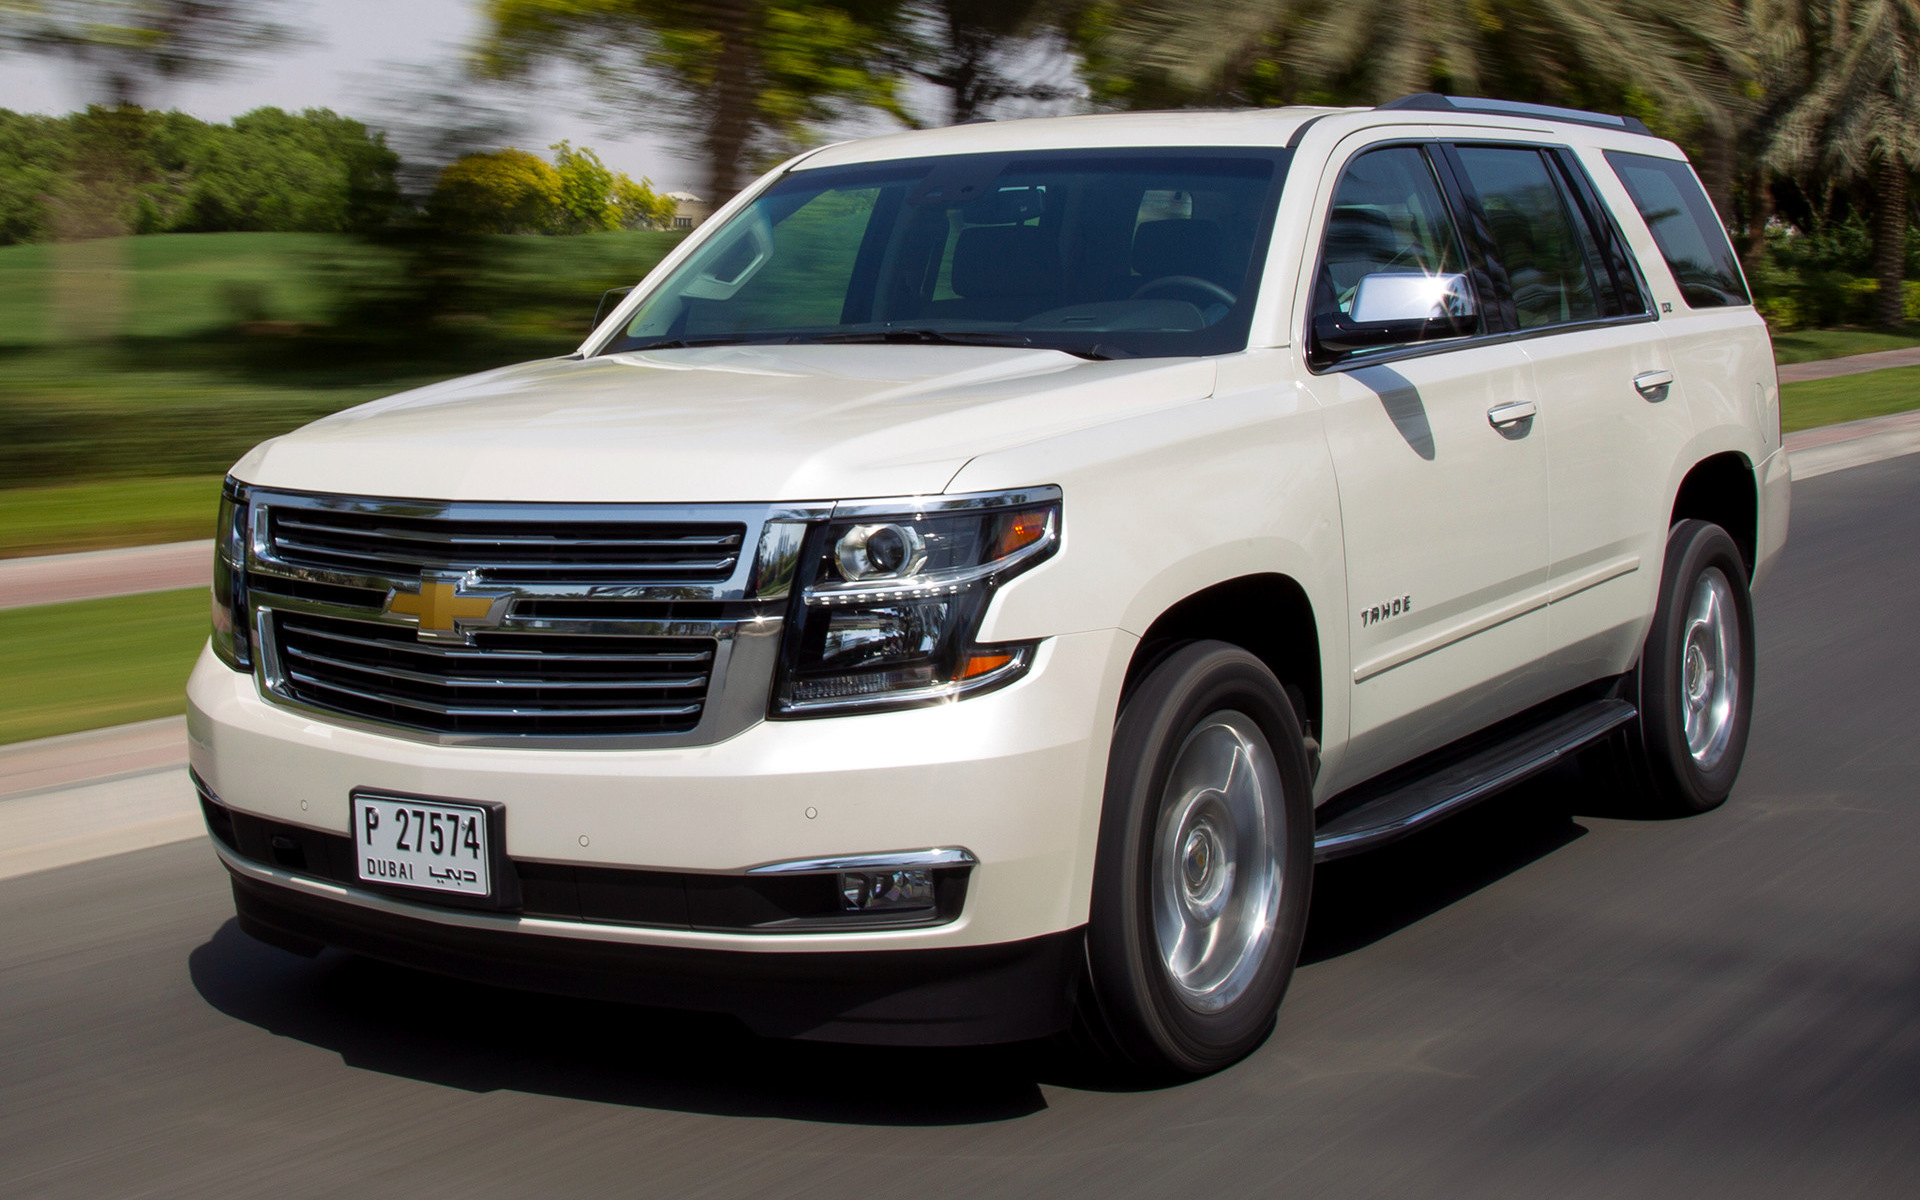 2015 Chevrolet Tahoe Ltz Wallpapers And Hd Images Car Pixel